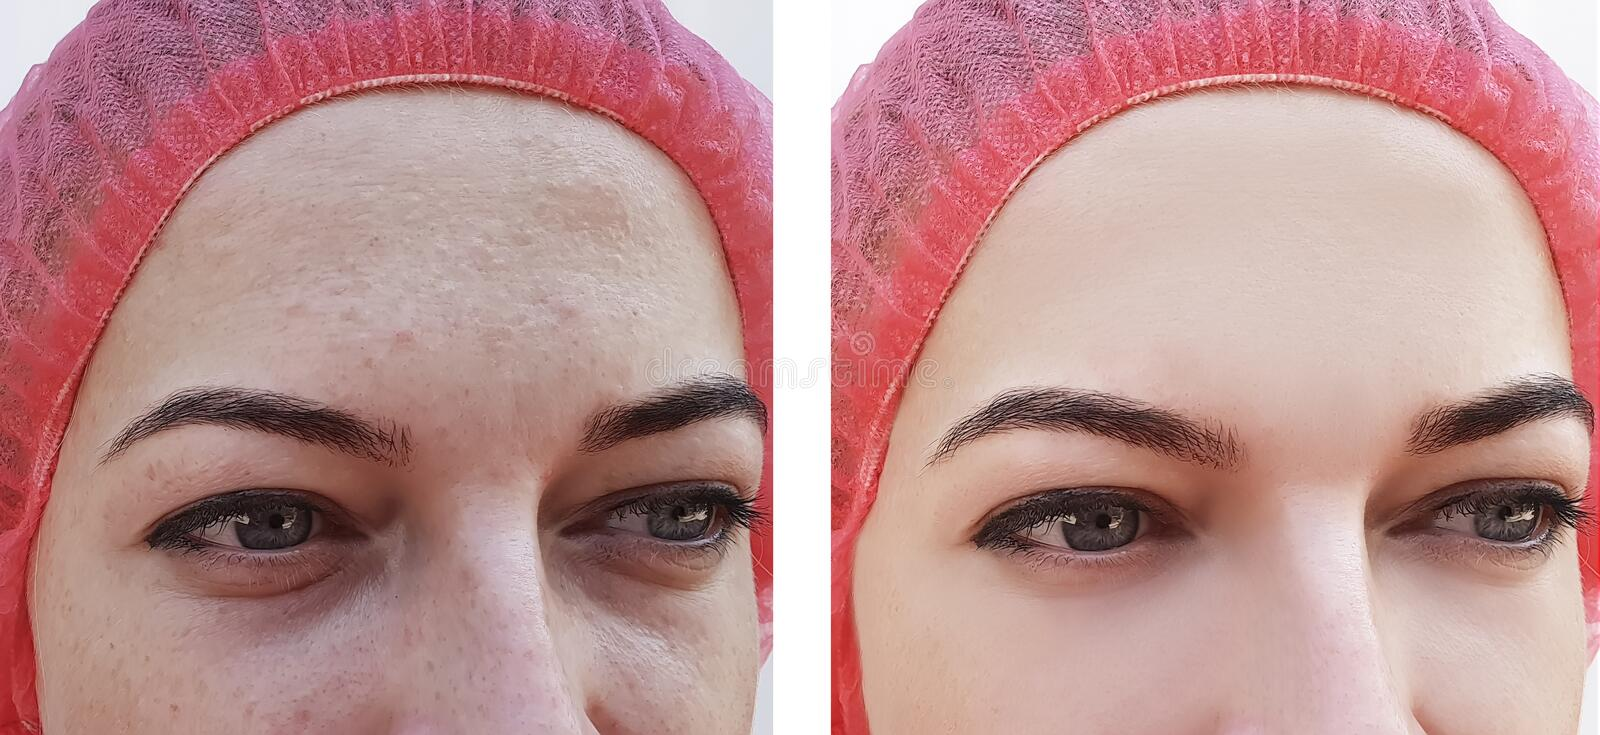 Face woman, wrinkles of eyes before and after procedures stock images